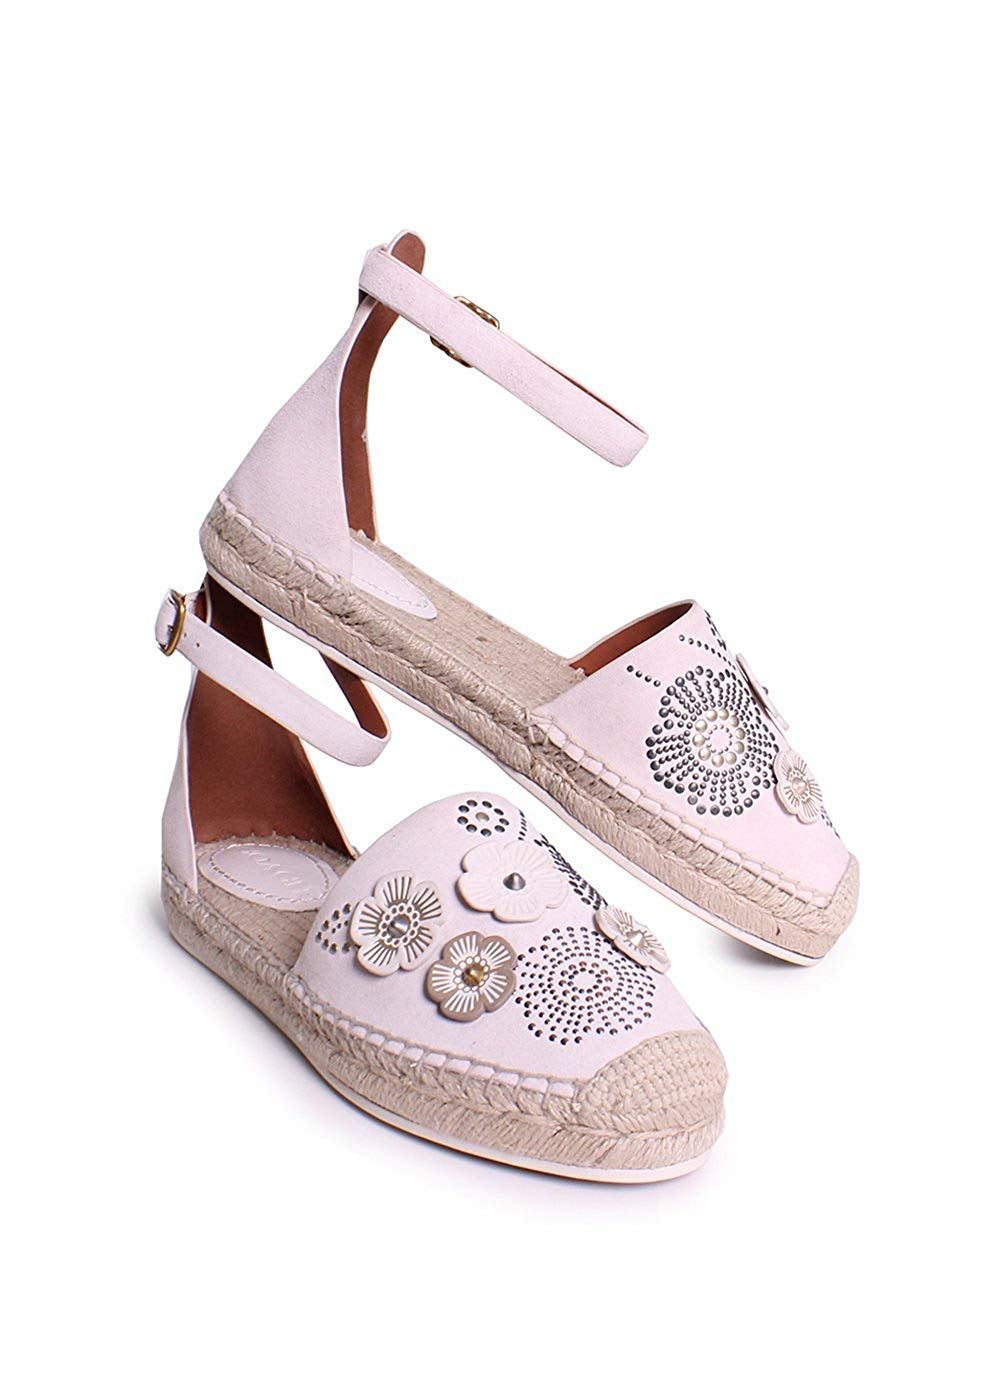 3be09ae11374 Coach Womens Astor Closed Toe Casual Ankle Strap Sandals